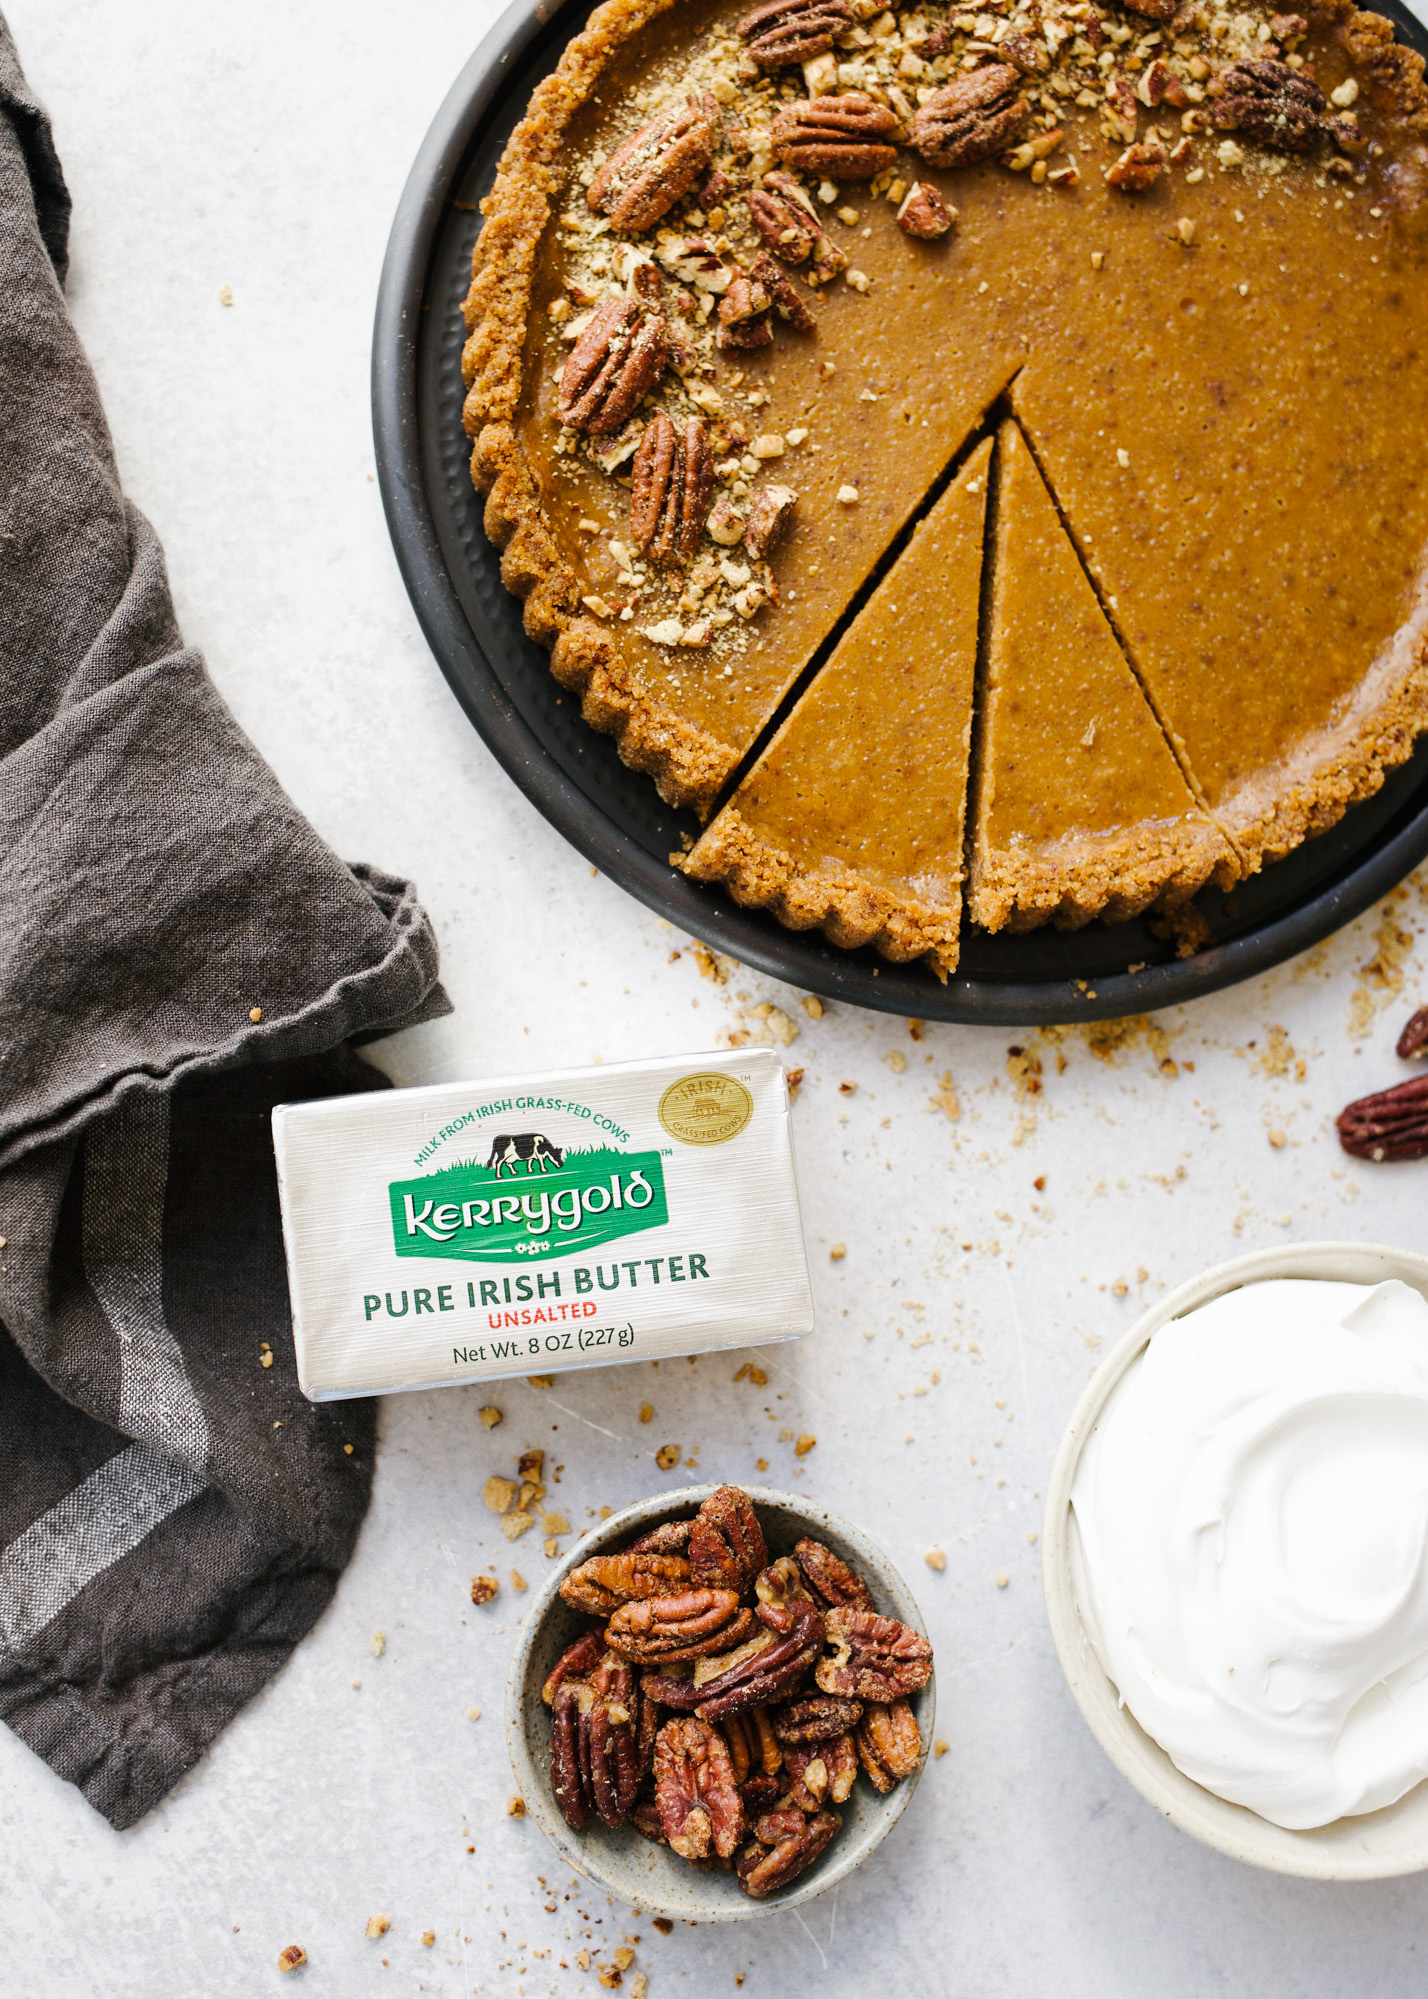 Sweet Potato Pie Tart with Candied Pecans and Marshmallow Whipped Cream by Wood and Spoon blog. A simple pumpkin pie-esque tart made with sugared nuts, a nuts and graham cracker crust, and a fluffy sweetened whipped cream topping! This is a terrific southern holiday favorite dessert to make during thanksgiving and Christmas winter months and is a beautiful take on the classic treat. Learn how to make them on thewoodandspoon.com